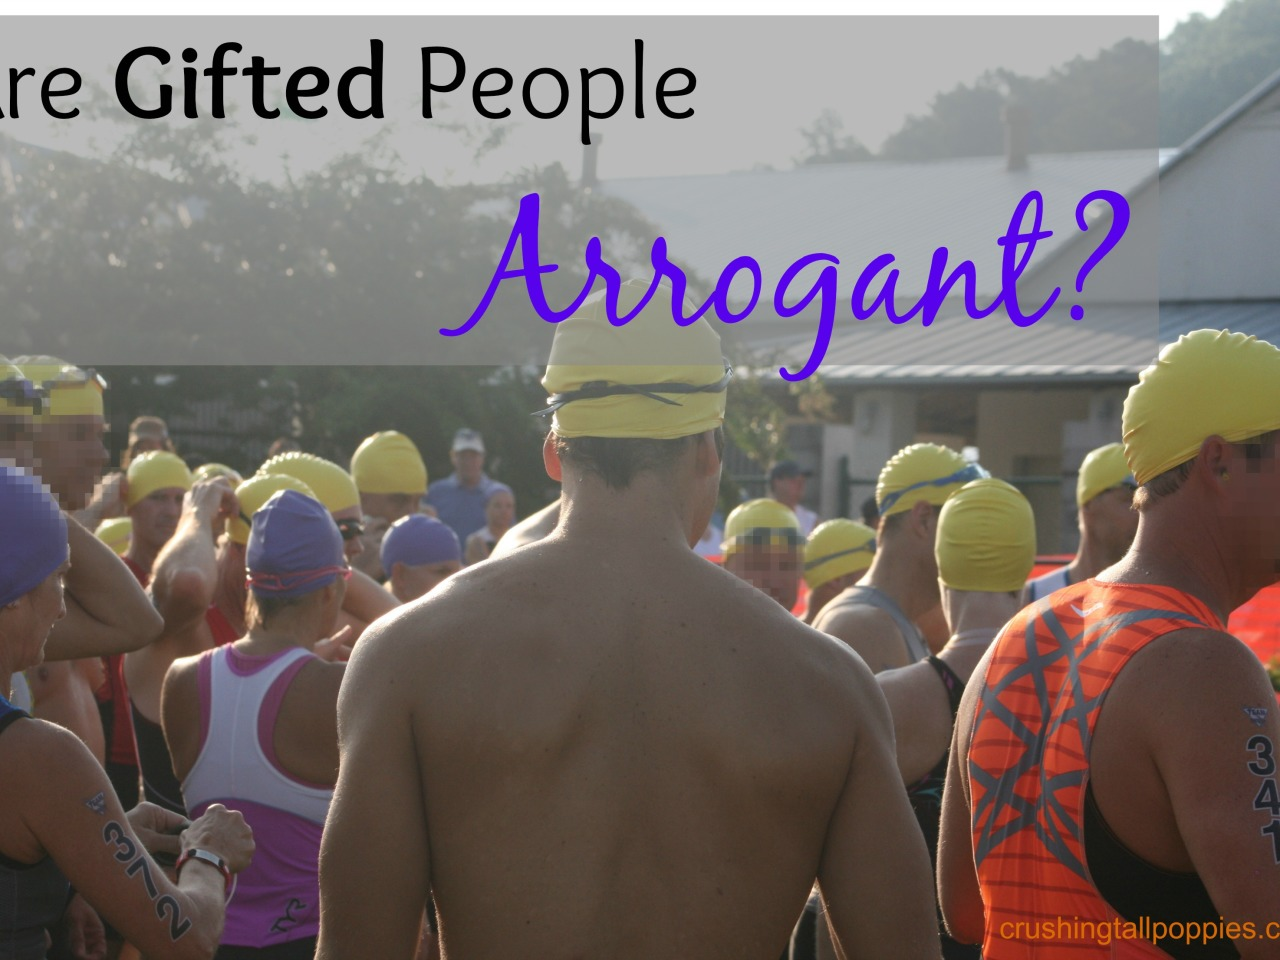 Are Gifted People Arrogant